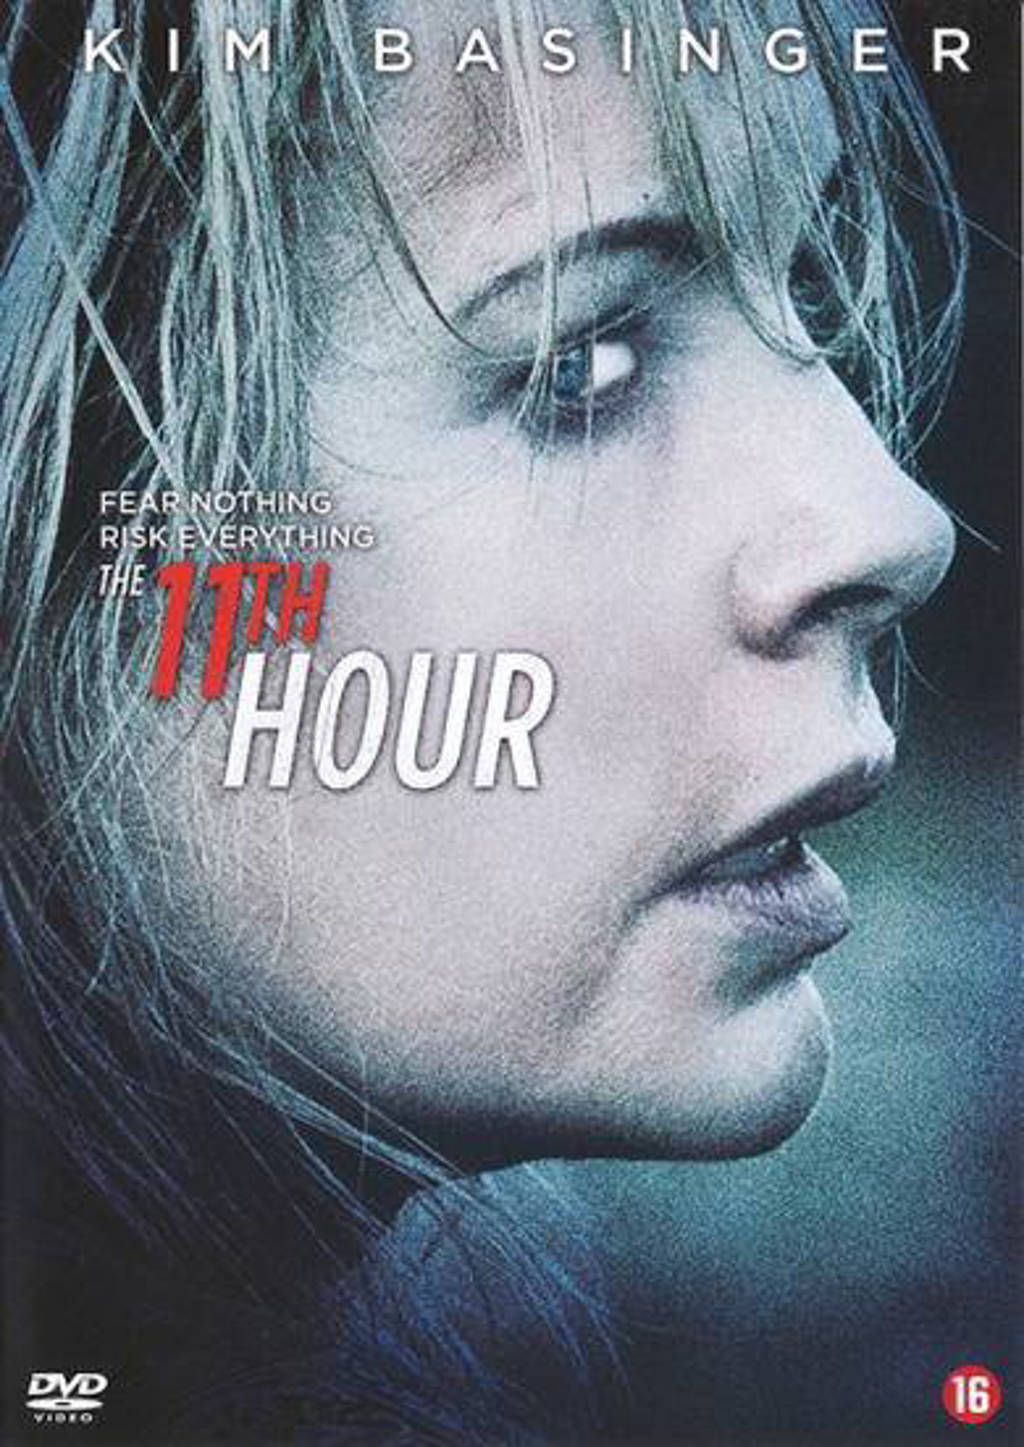 11th hour (DVD)